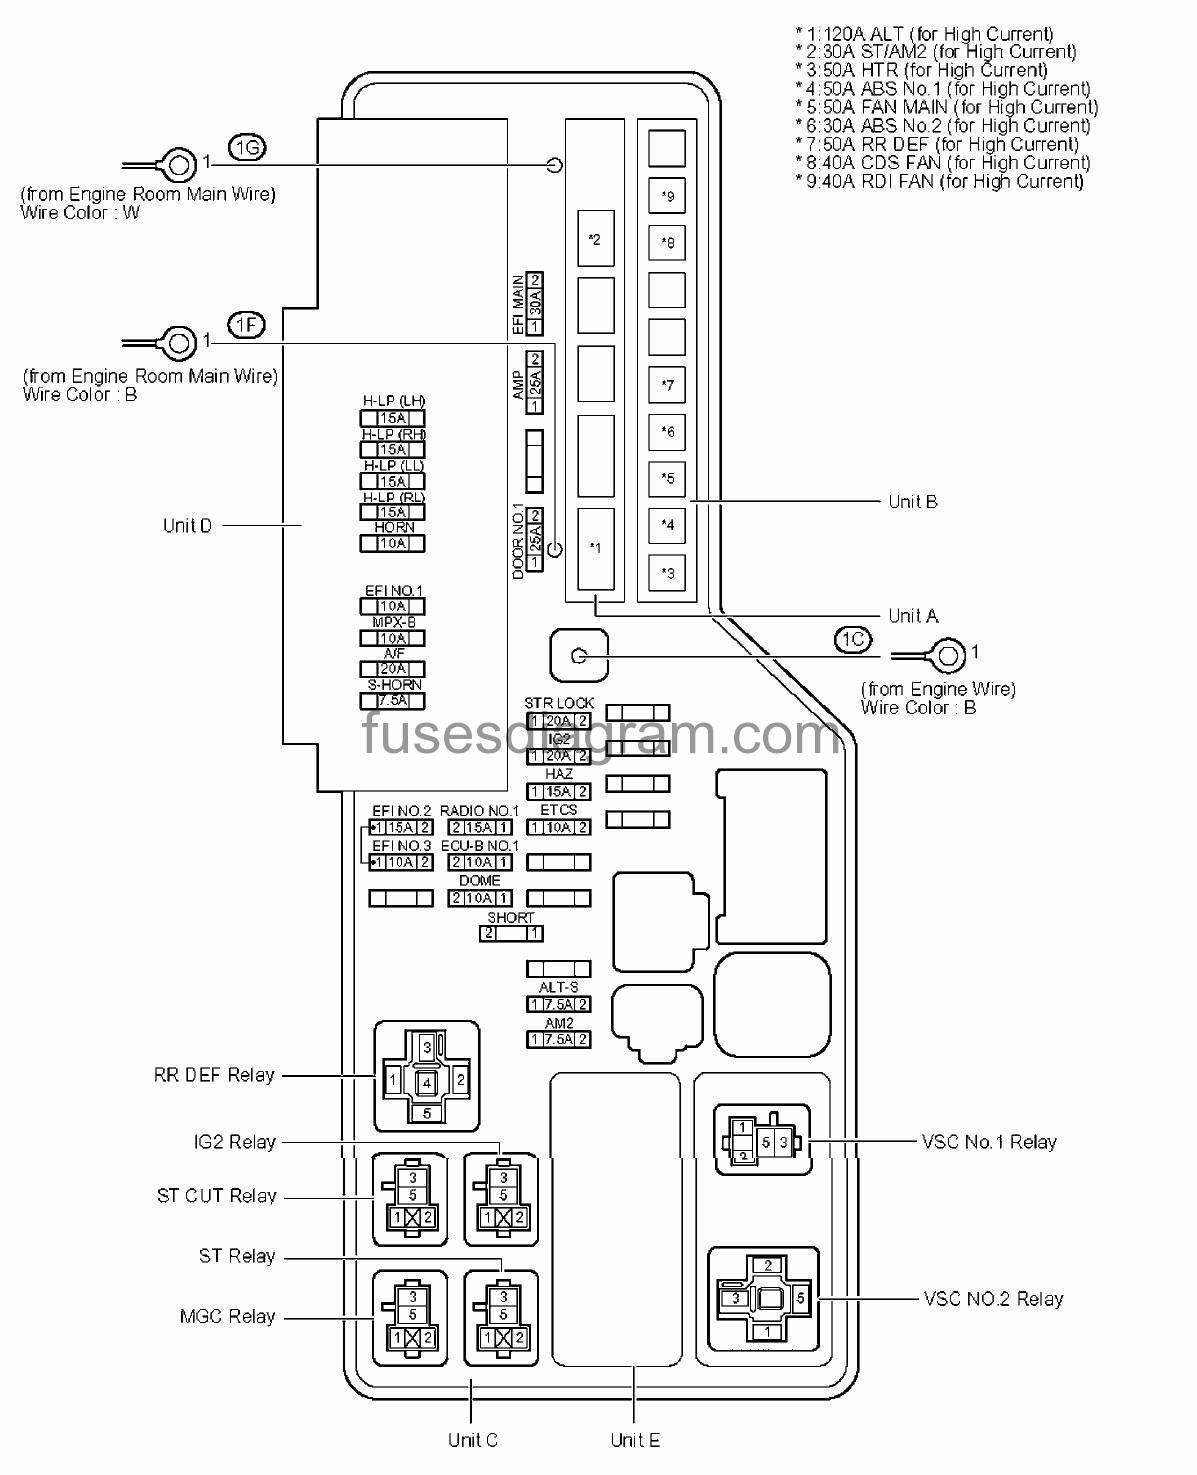 hight resolution of 2007 camry fuse box wiring diagram view toyota tacoma 2007 fuse box diagram toyota camry fuse